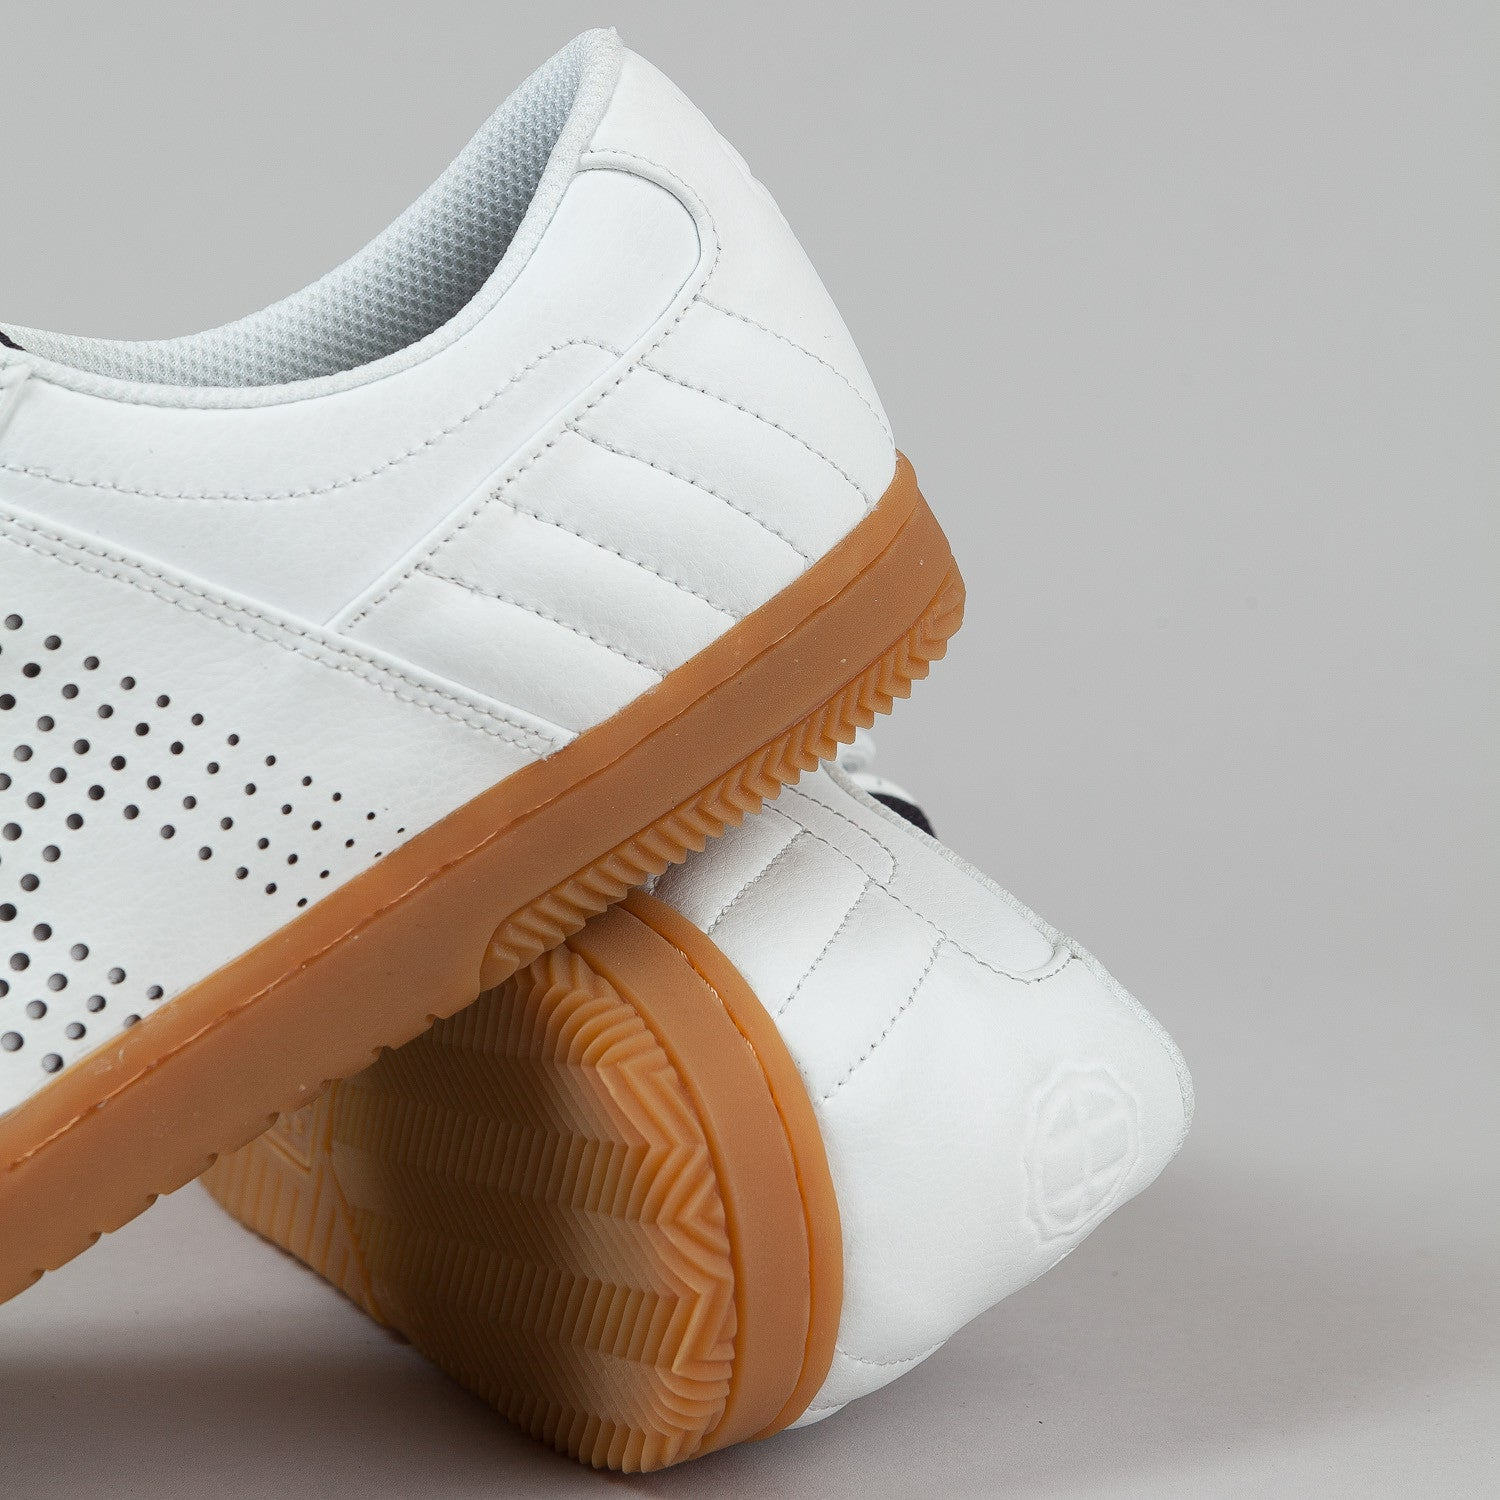 HUF HUFnagel 2 Shoes - White / Gum